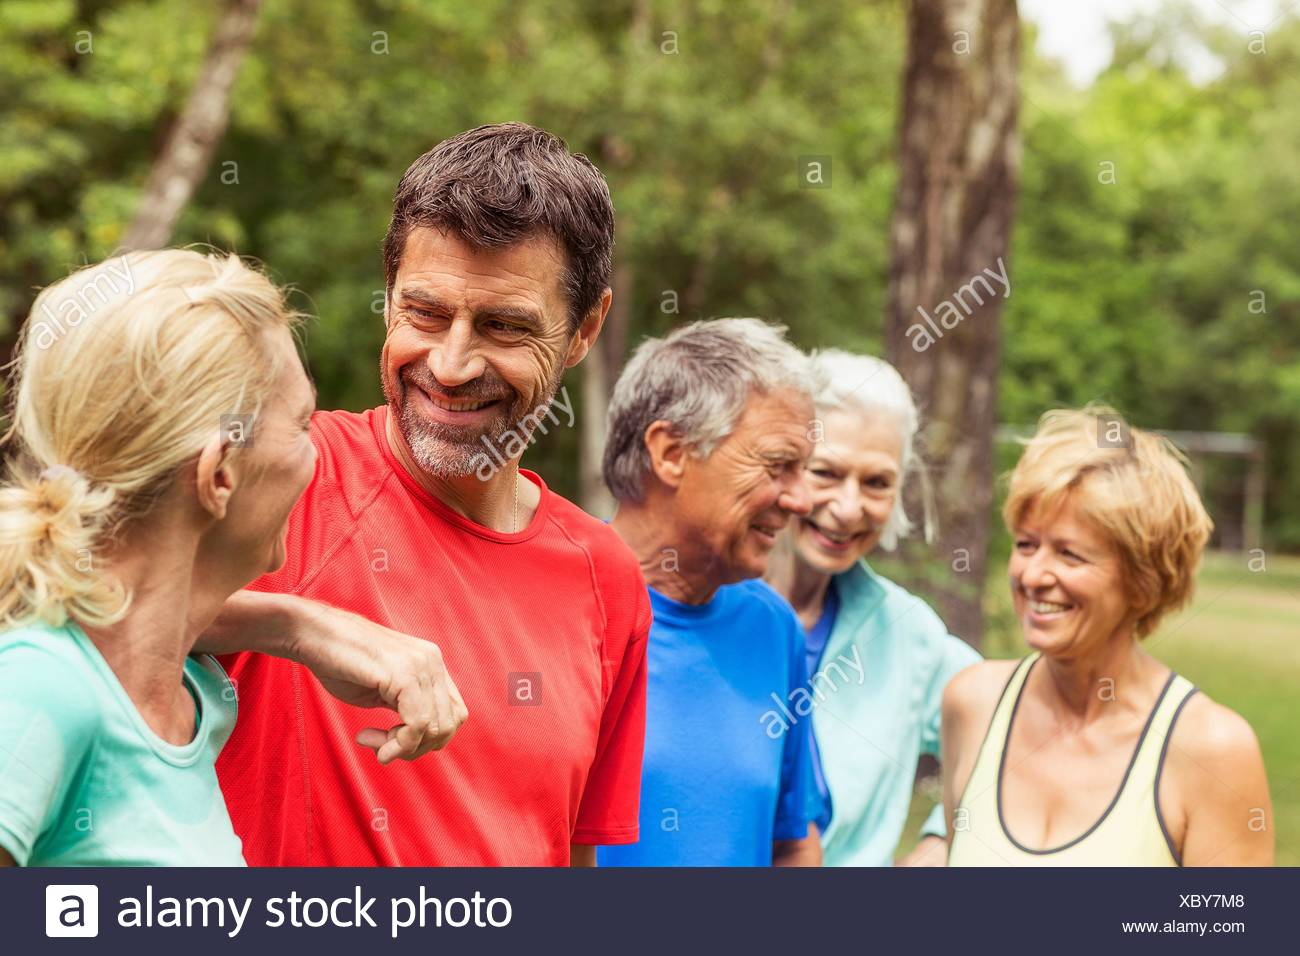 Group of adults outdoors, wearing sports clothing, smiling - Stock Image